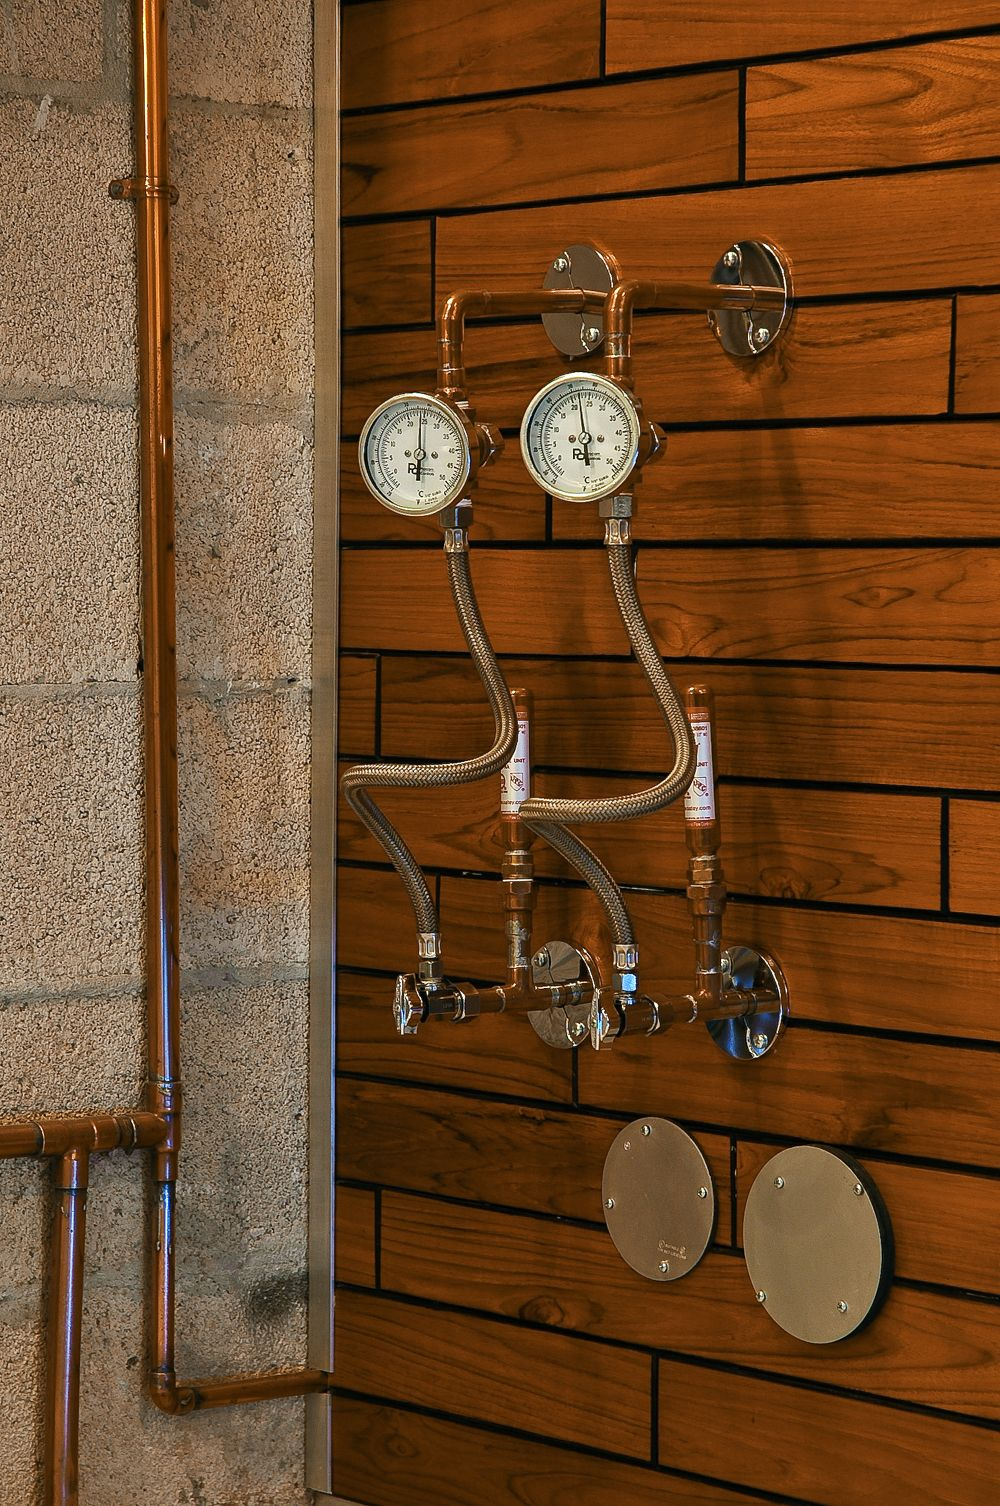 Very Nice Shut Off Valve Setup Very Steampunk This Idea Can Be Used In Many Interesting Places Steampunk Bathroom Steampunk Interior Steampunk Furniture [ 1506 x 1000 Pixel ]